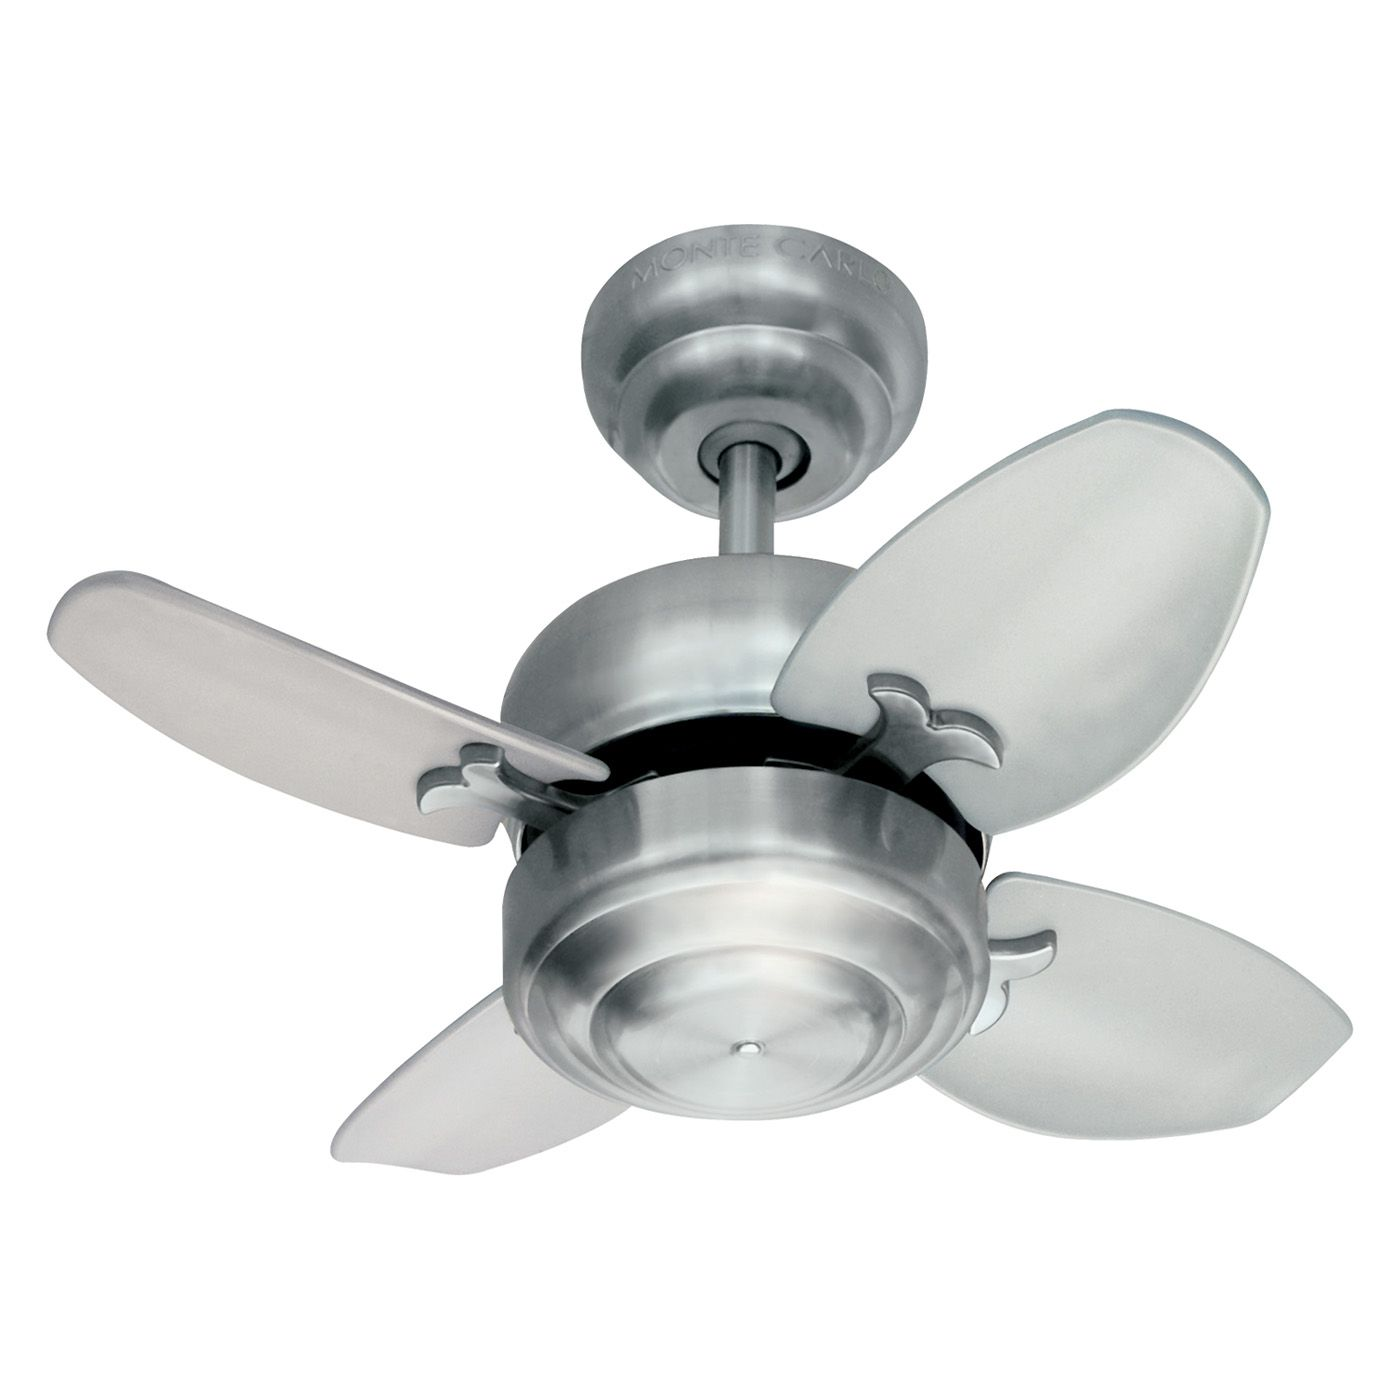 Shop Monte Carlo Fan pany 4MC20 Mini Outdoor Ceiling Fan at ATG